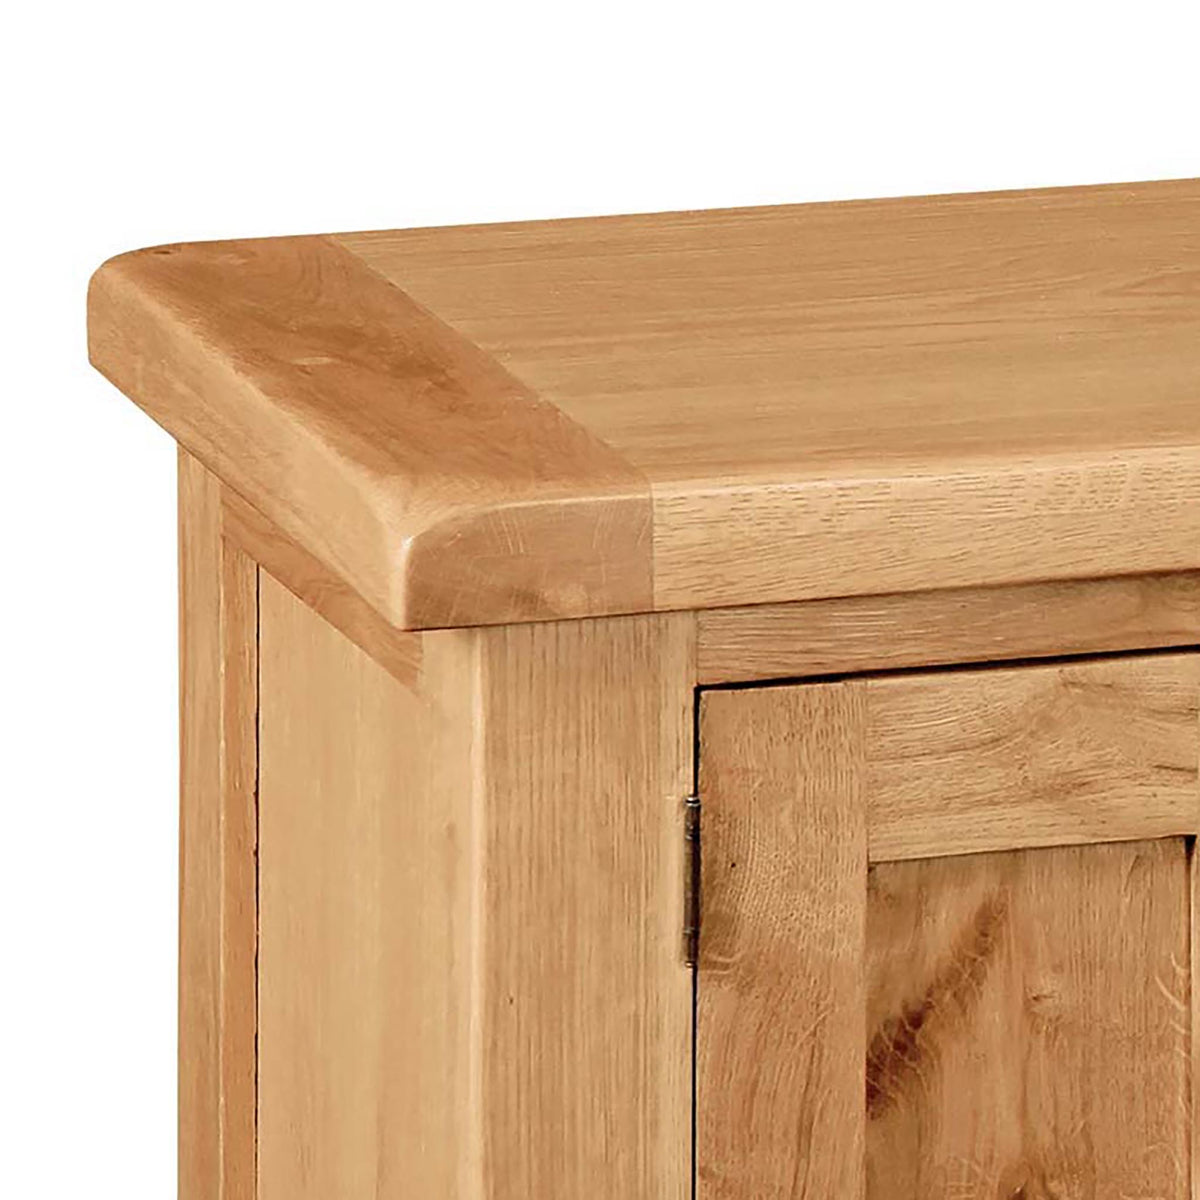 Sidmouth Oak 120cm TV Stand - Close Up of Oak Top of TV Stand